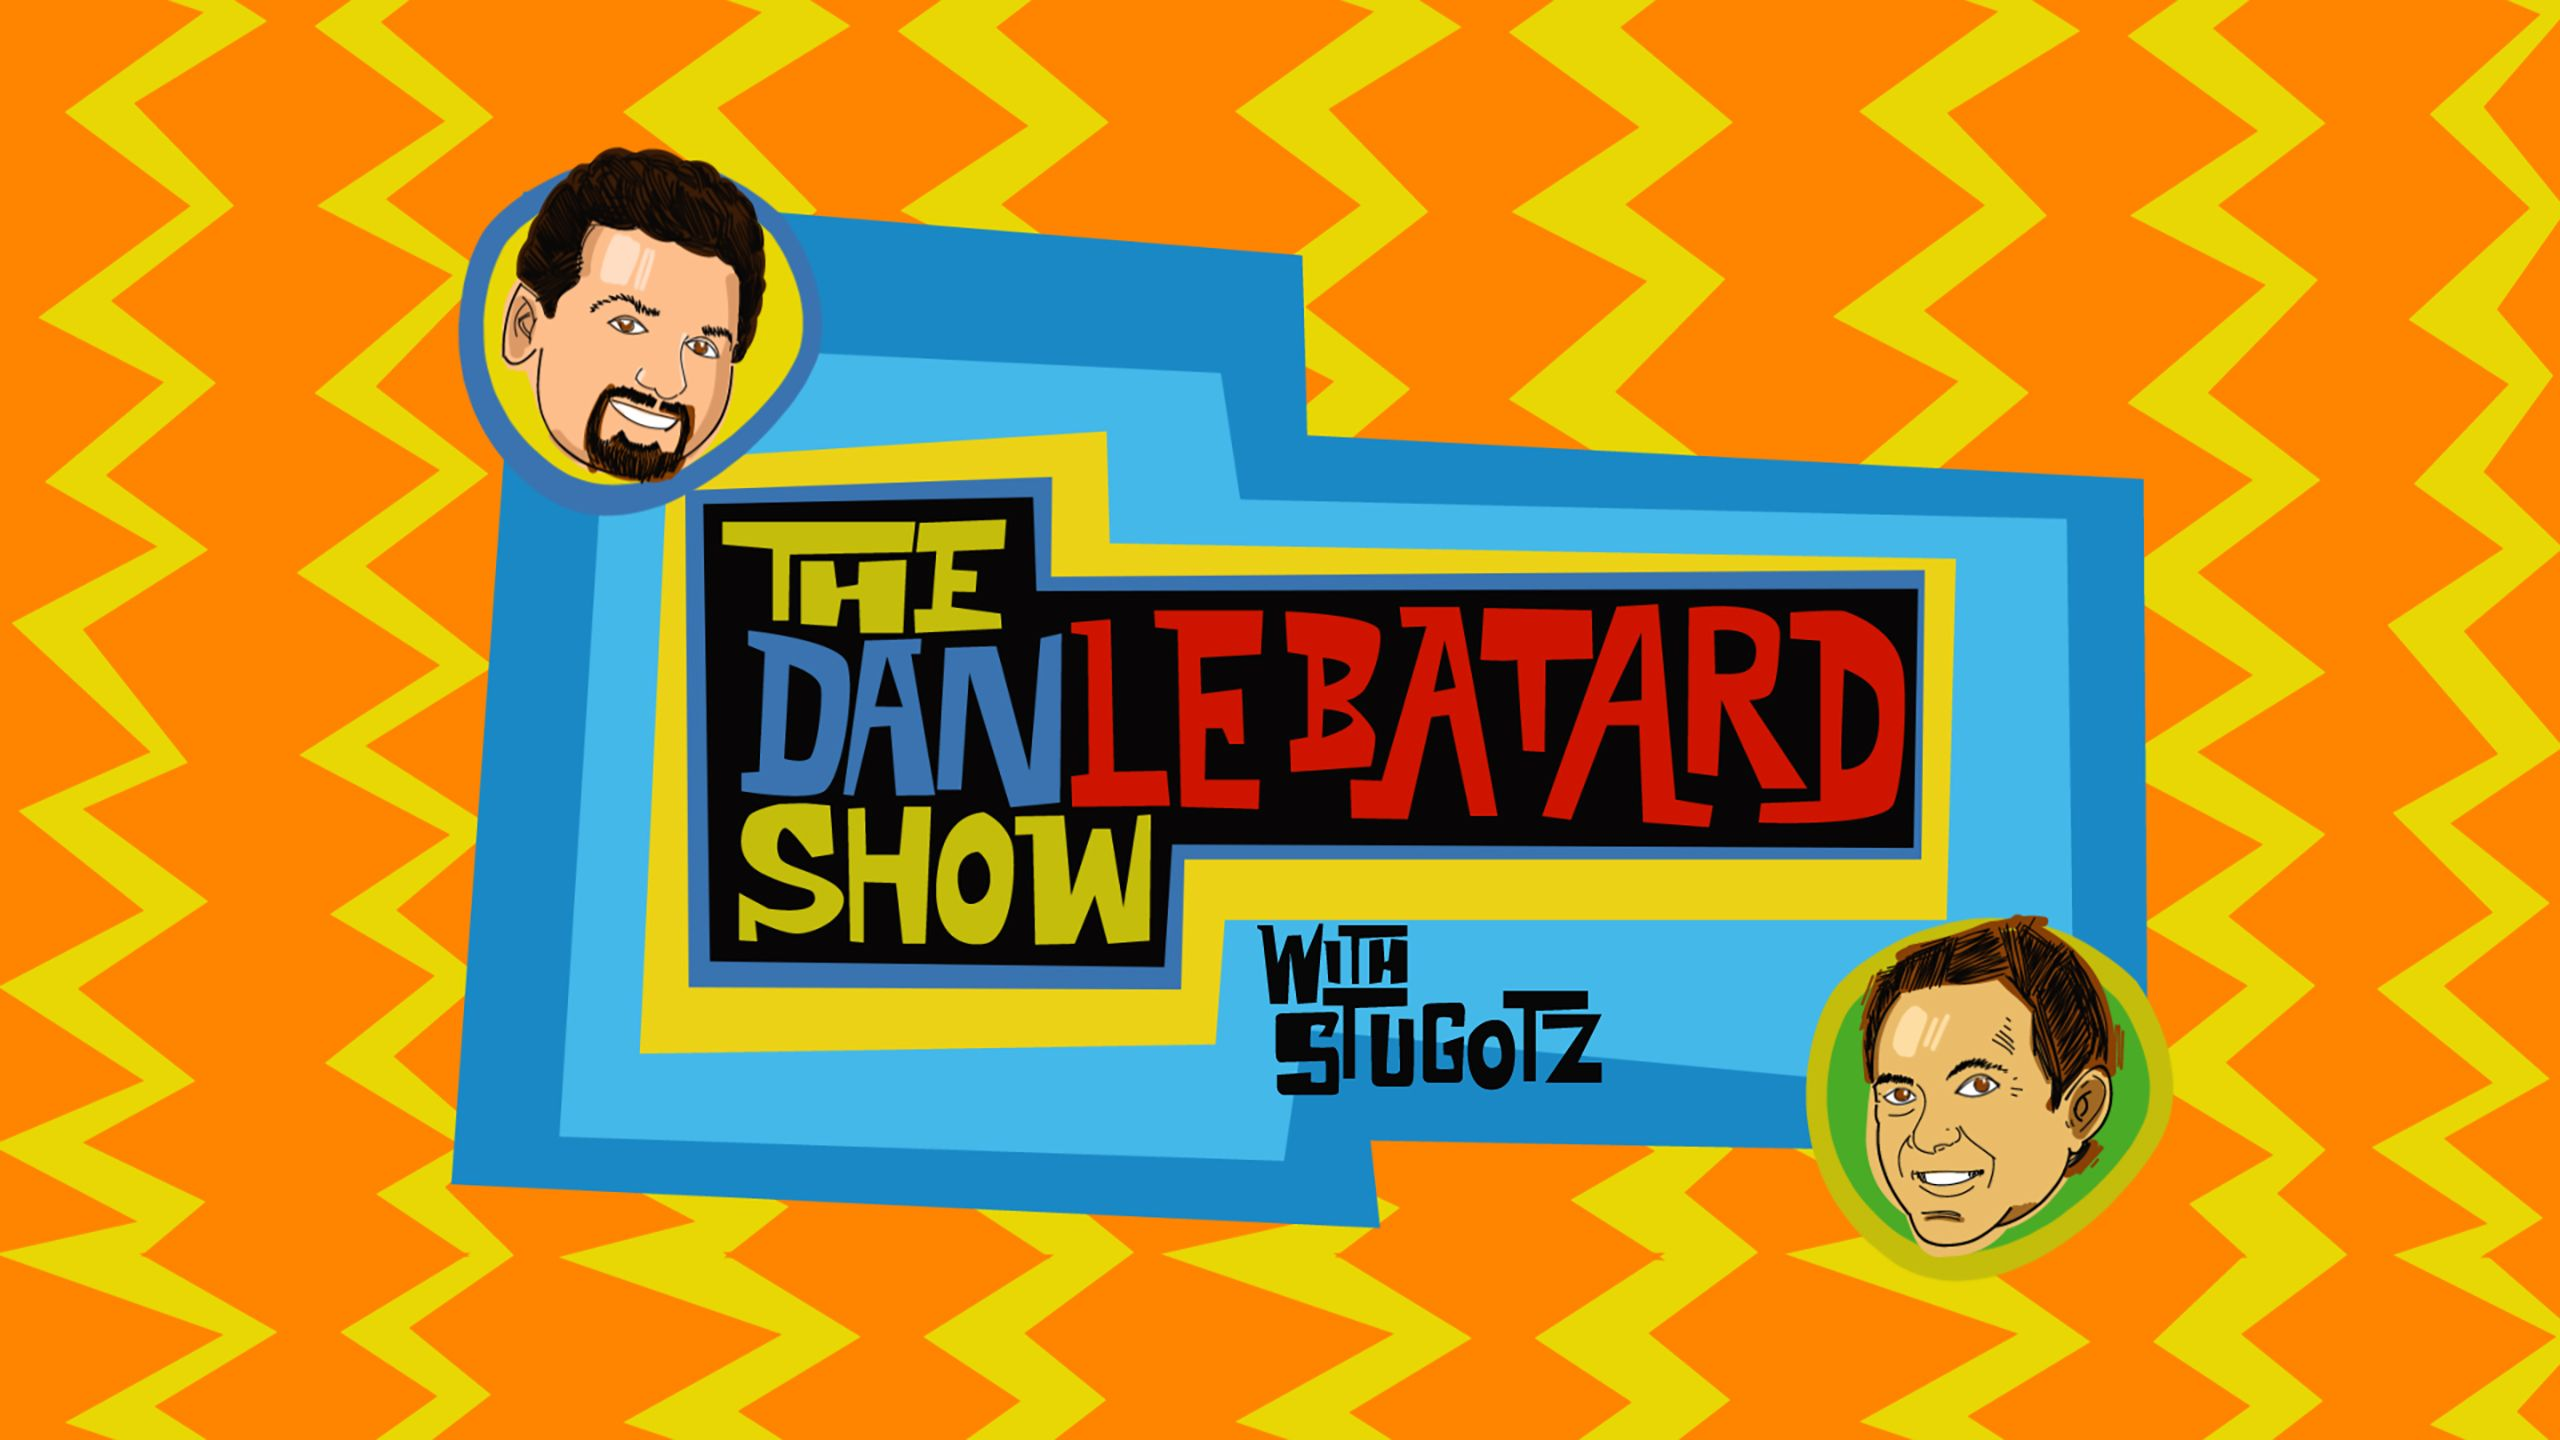 Mon, 3/19 - The Dan Le Batard Show with Stugotz Presented by Progressive